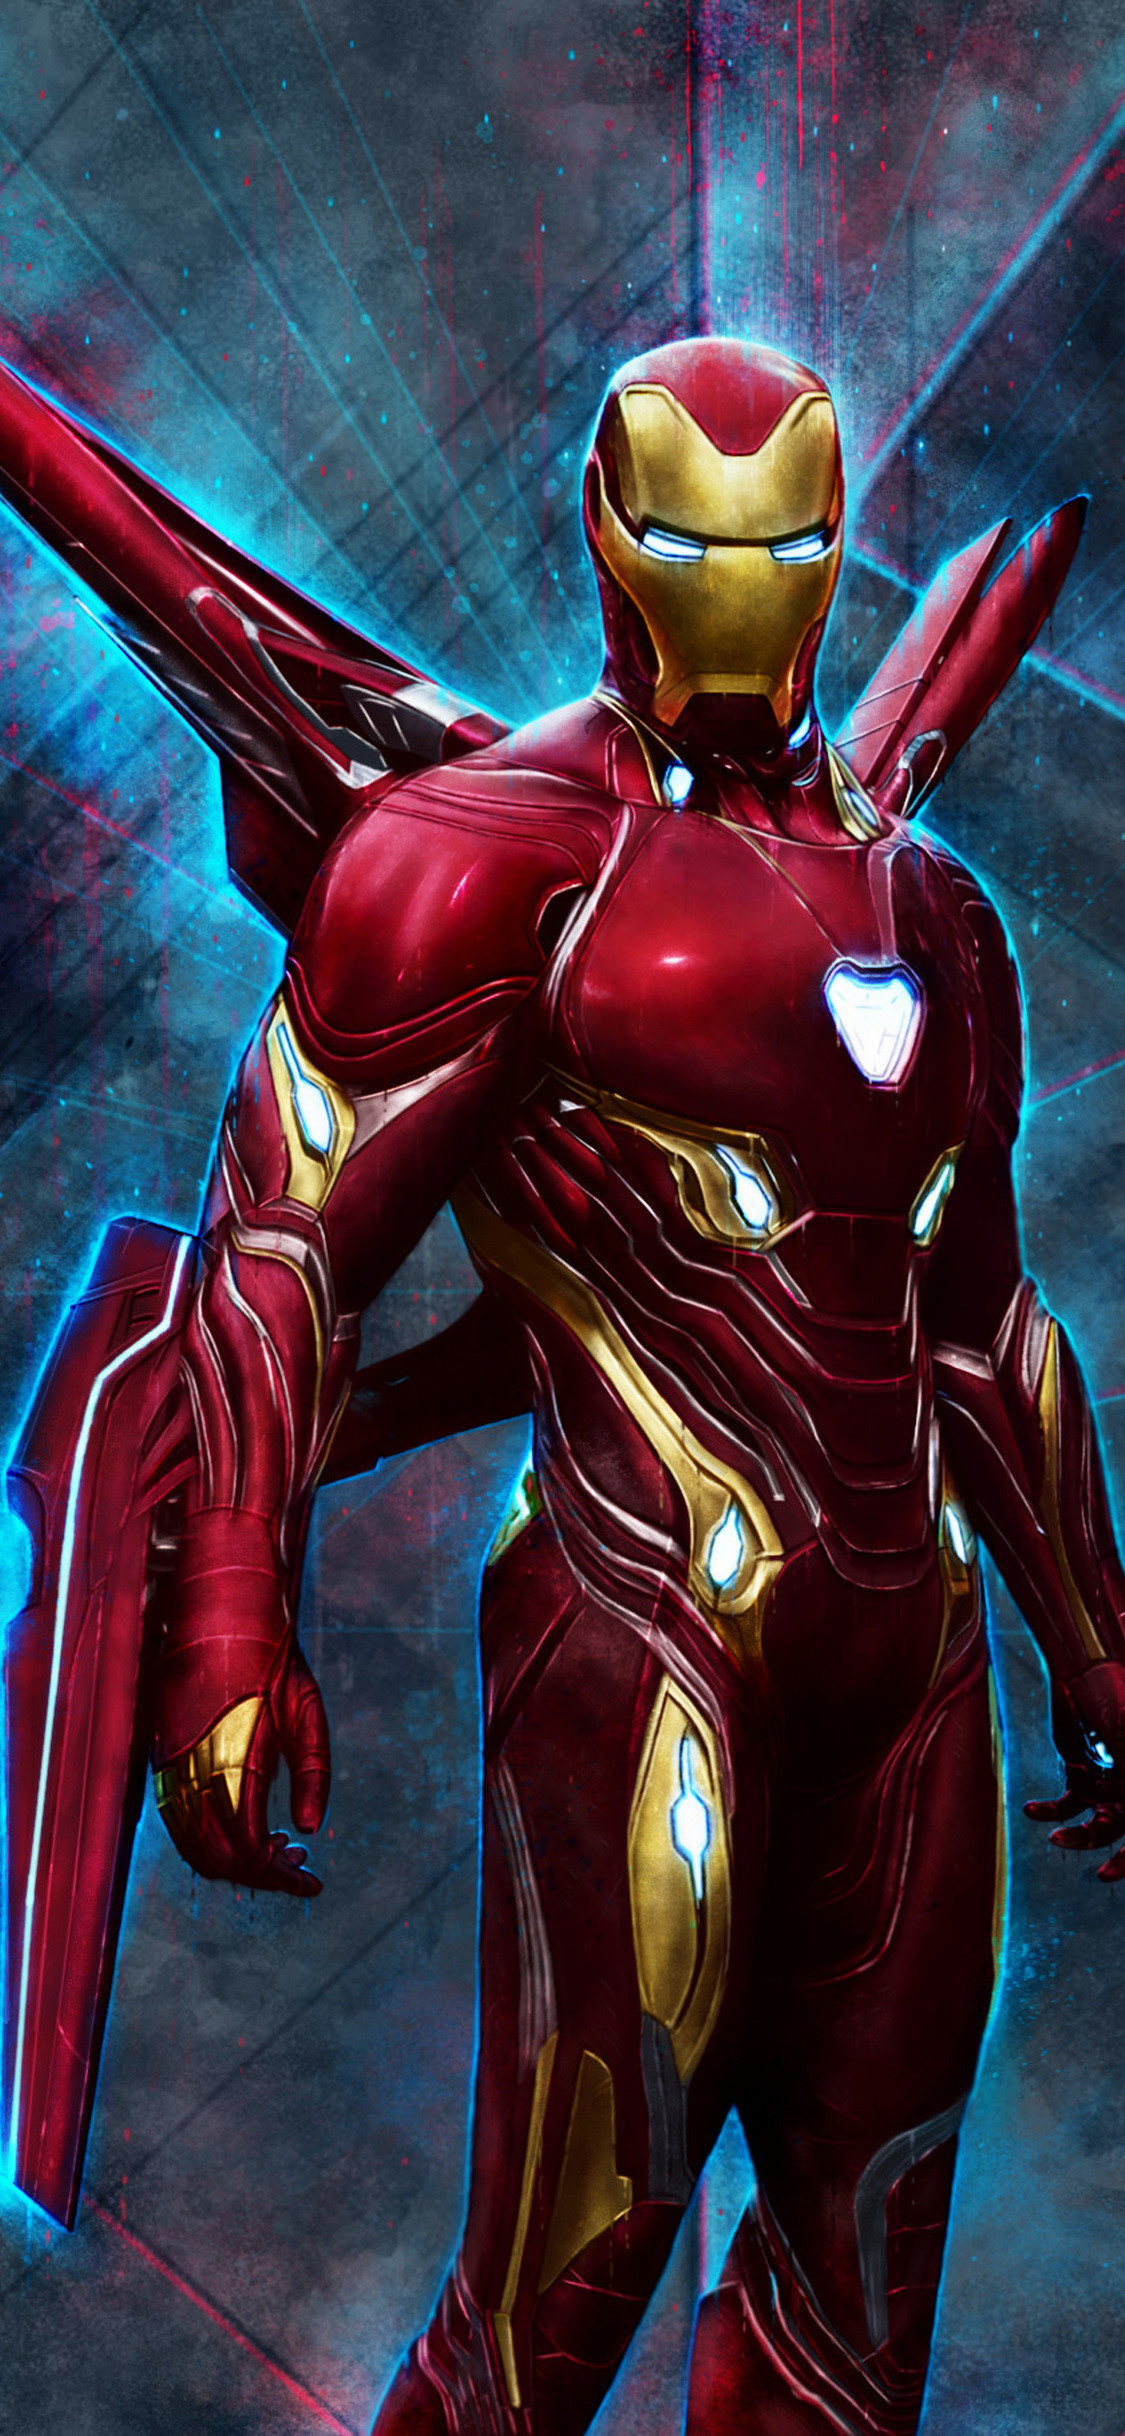 Sfondo Iphone Iron Man Reformwi Org